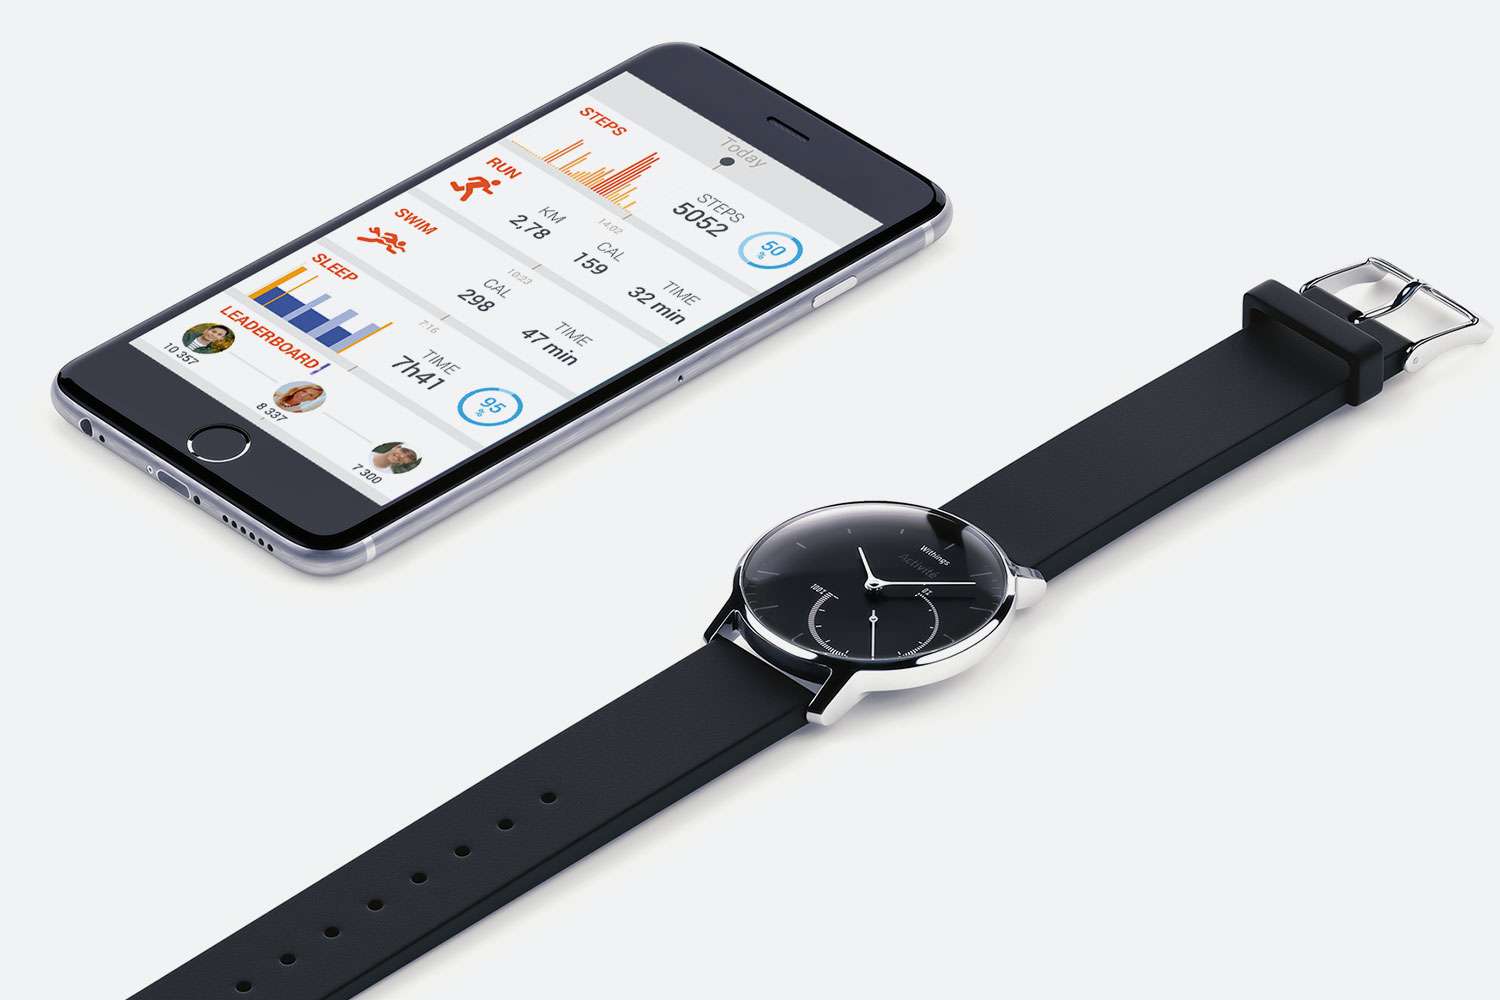 Withings is onto something with its Activité smartwatches